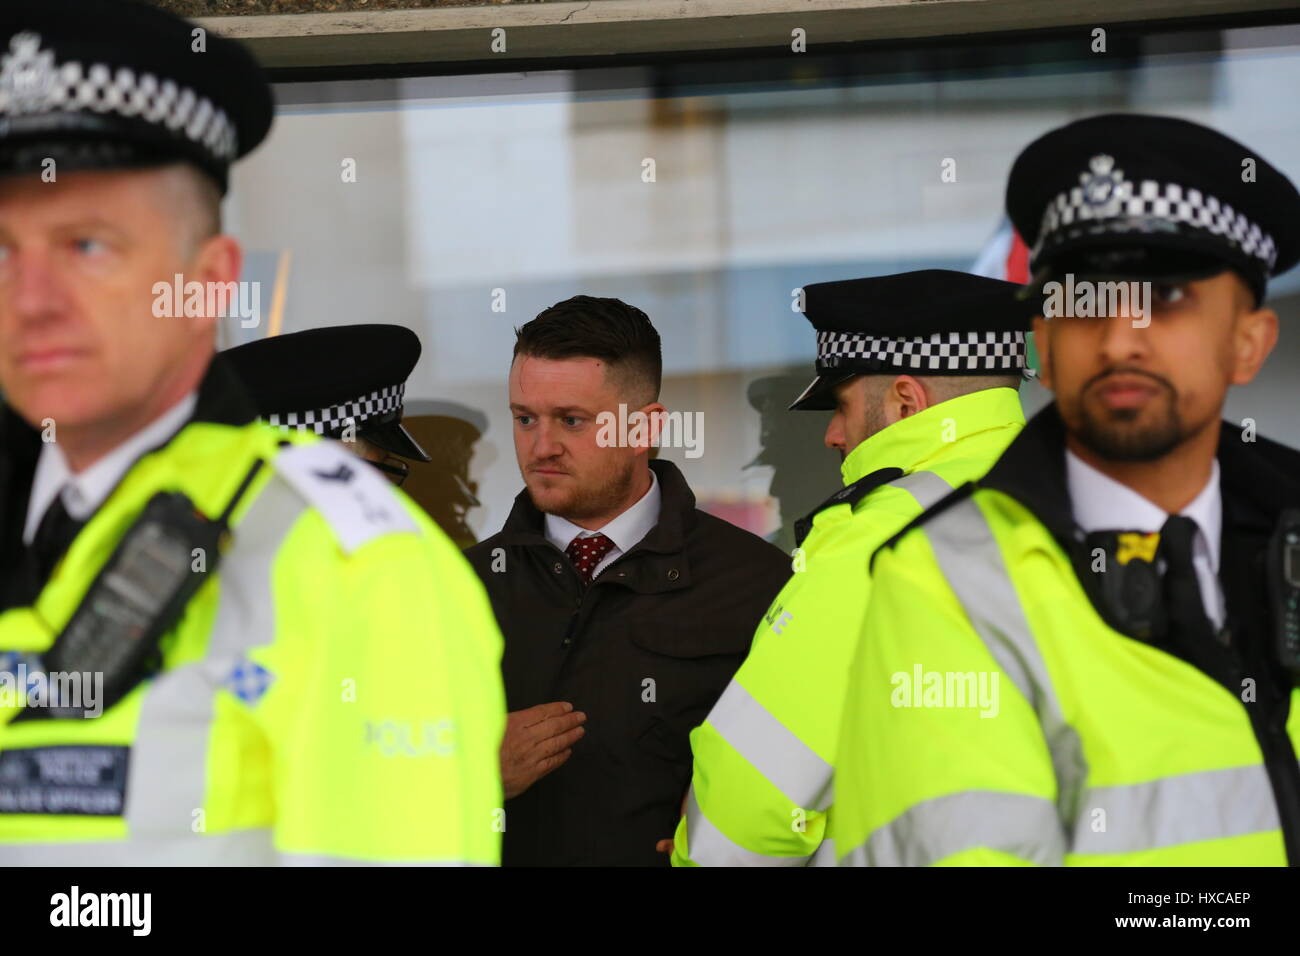 London, UK. 18th March, 2017. United Nations Anti-Racism march through London. Ex English Defence League leader - Stock Image